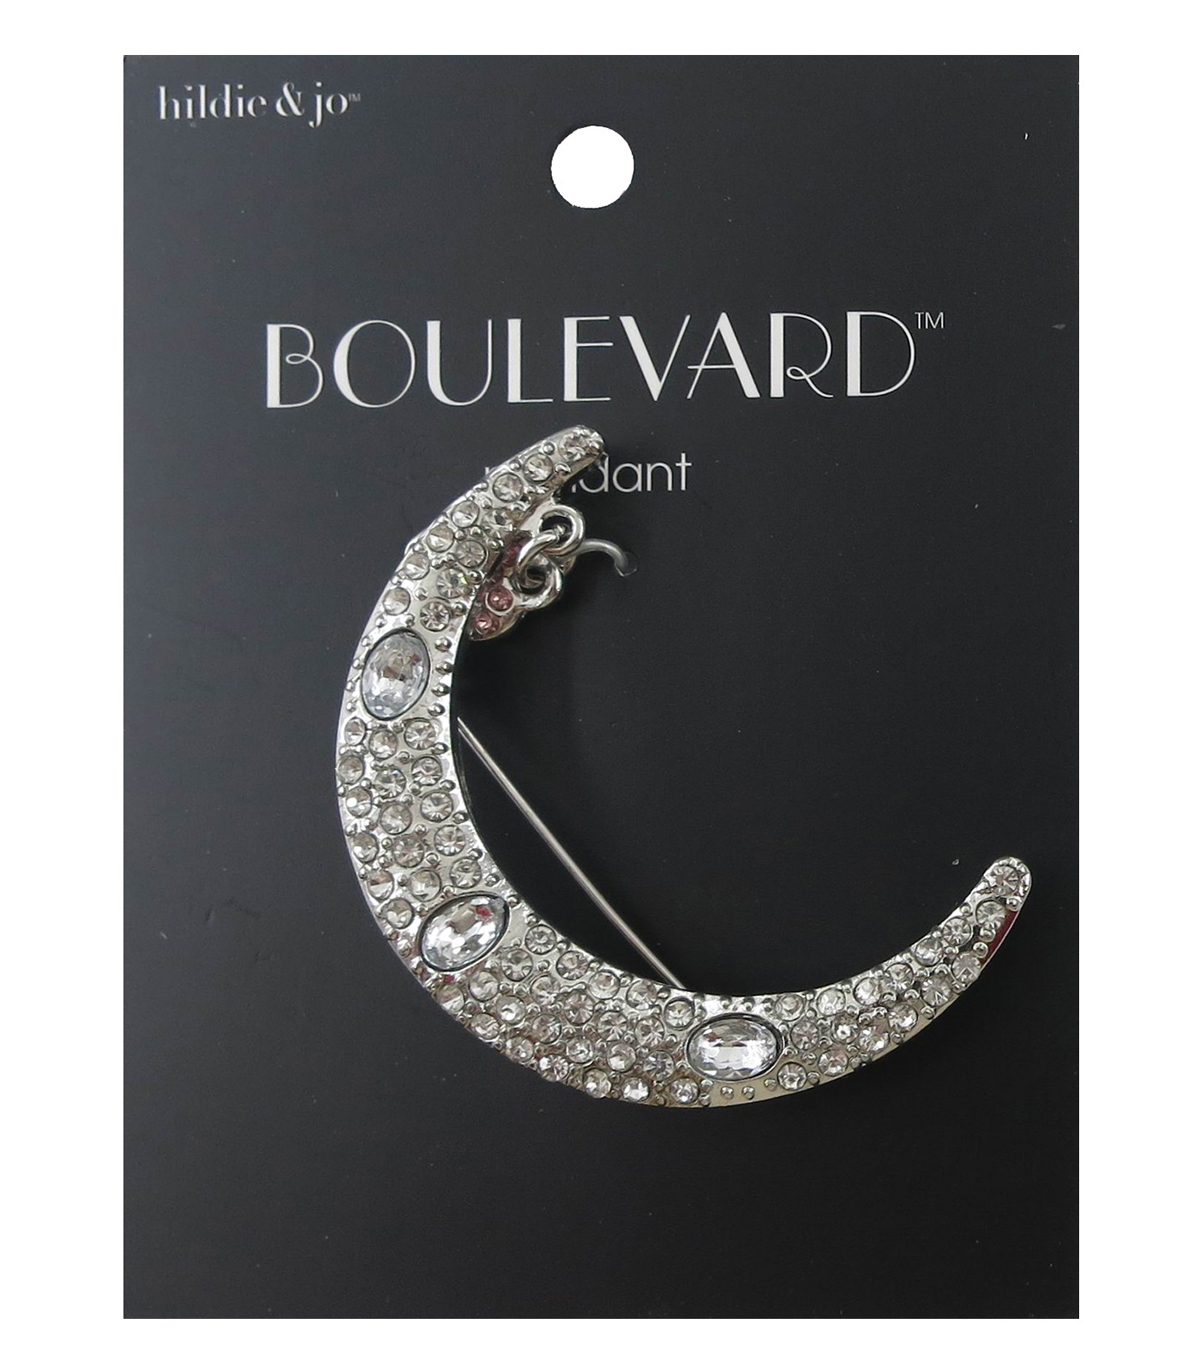 hildie & jo Boulevard 2\u0027\u0027x0.25\u0027\u0027 Moon with Heart Silver Brooch